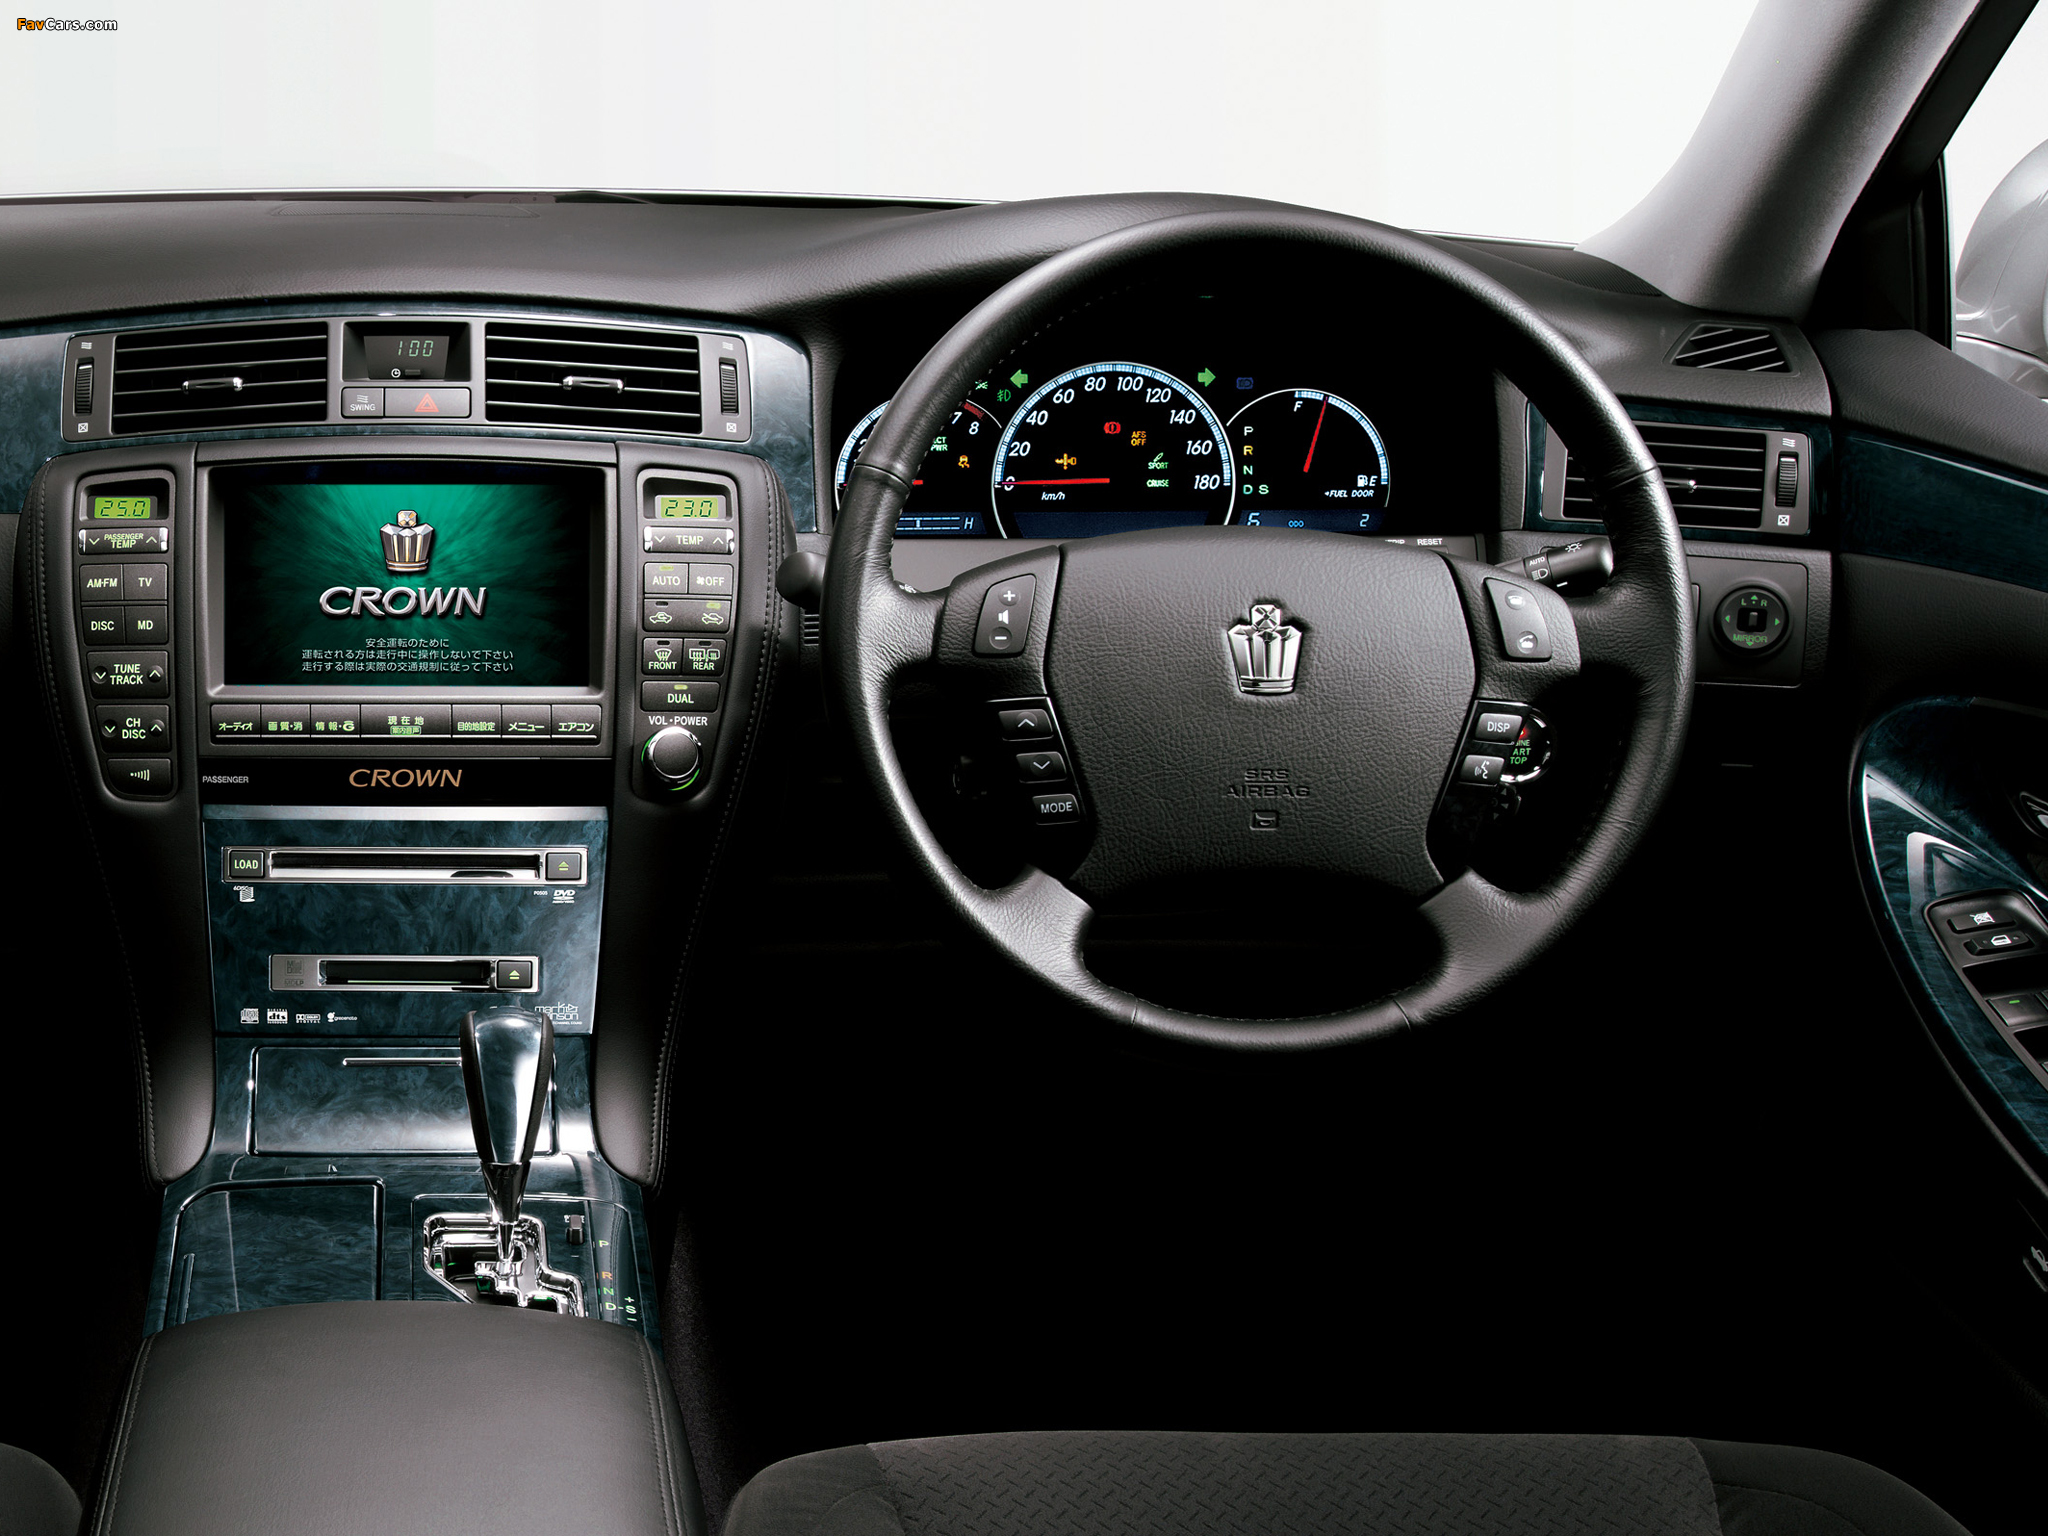 2012 Toyota Crown Athlete 3.5 G specifications ...